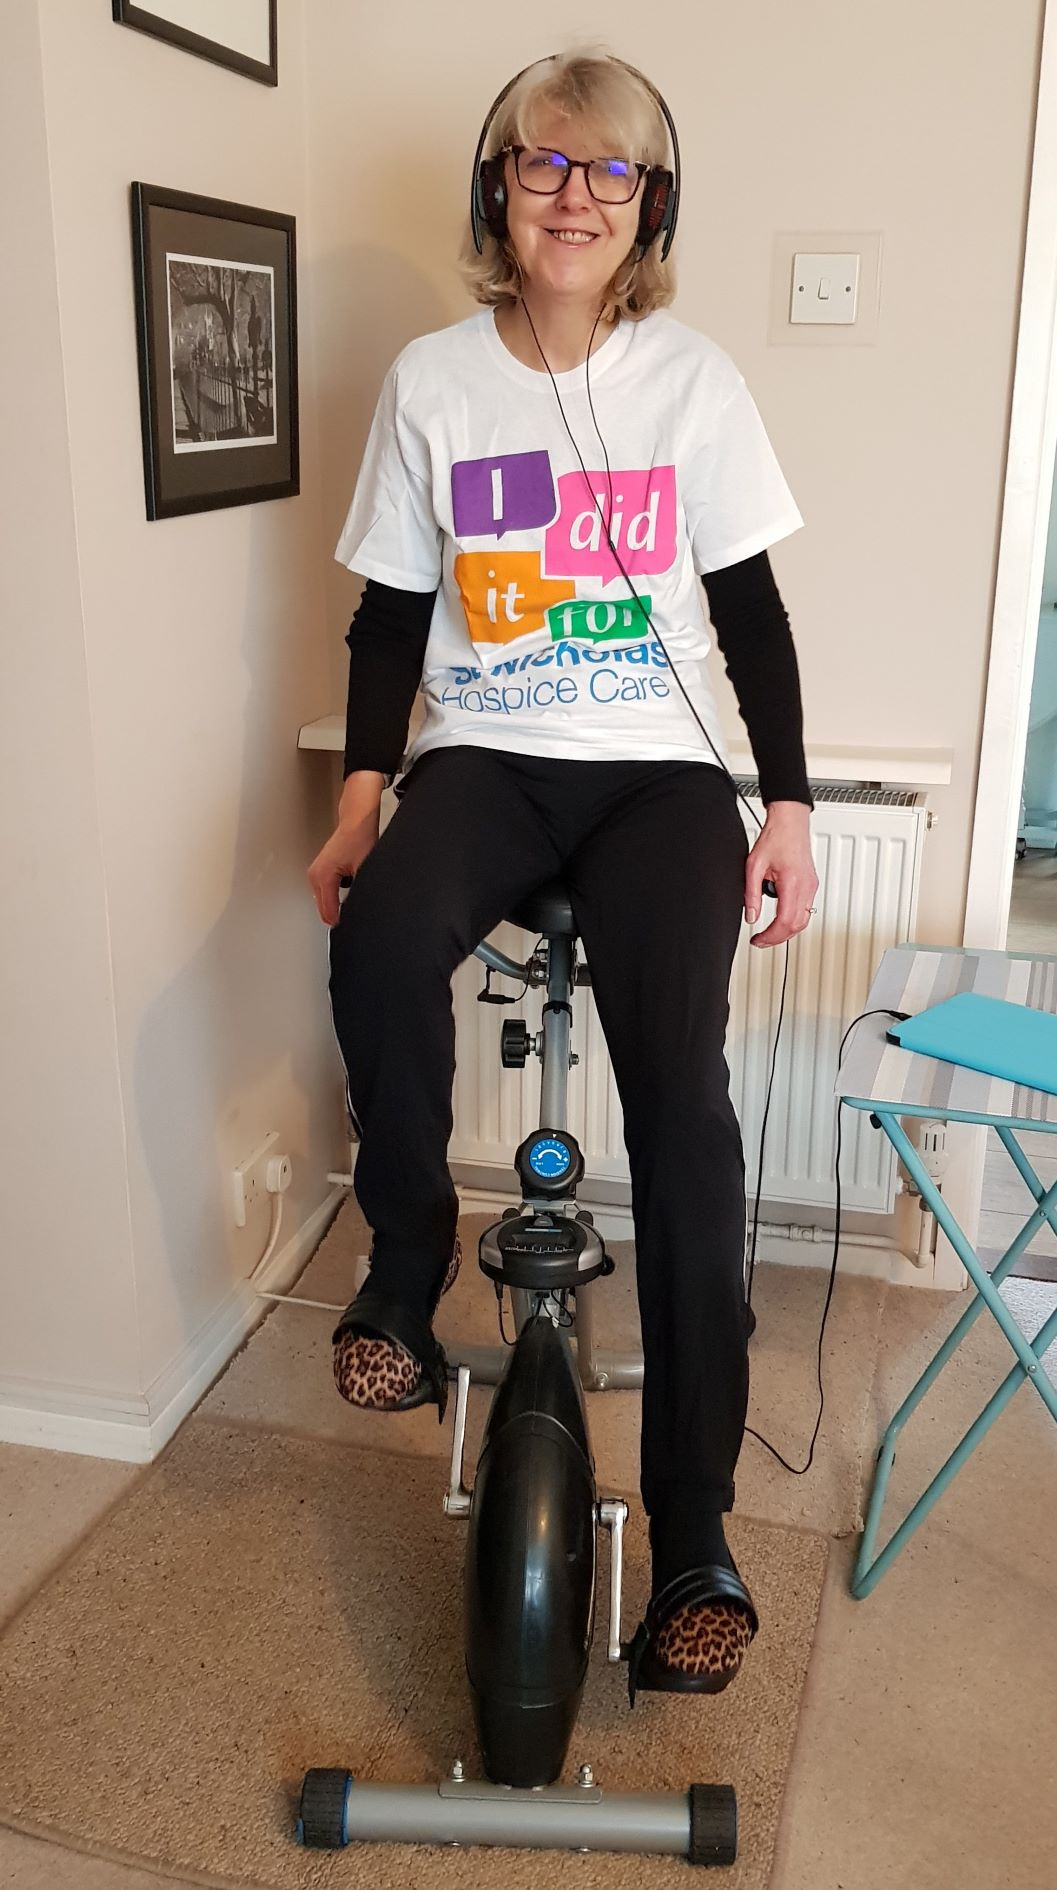 A charity fundraiser will be using her pedal power to raise funds